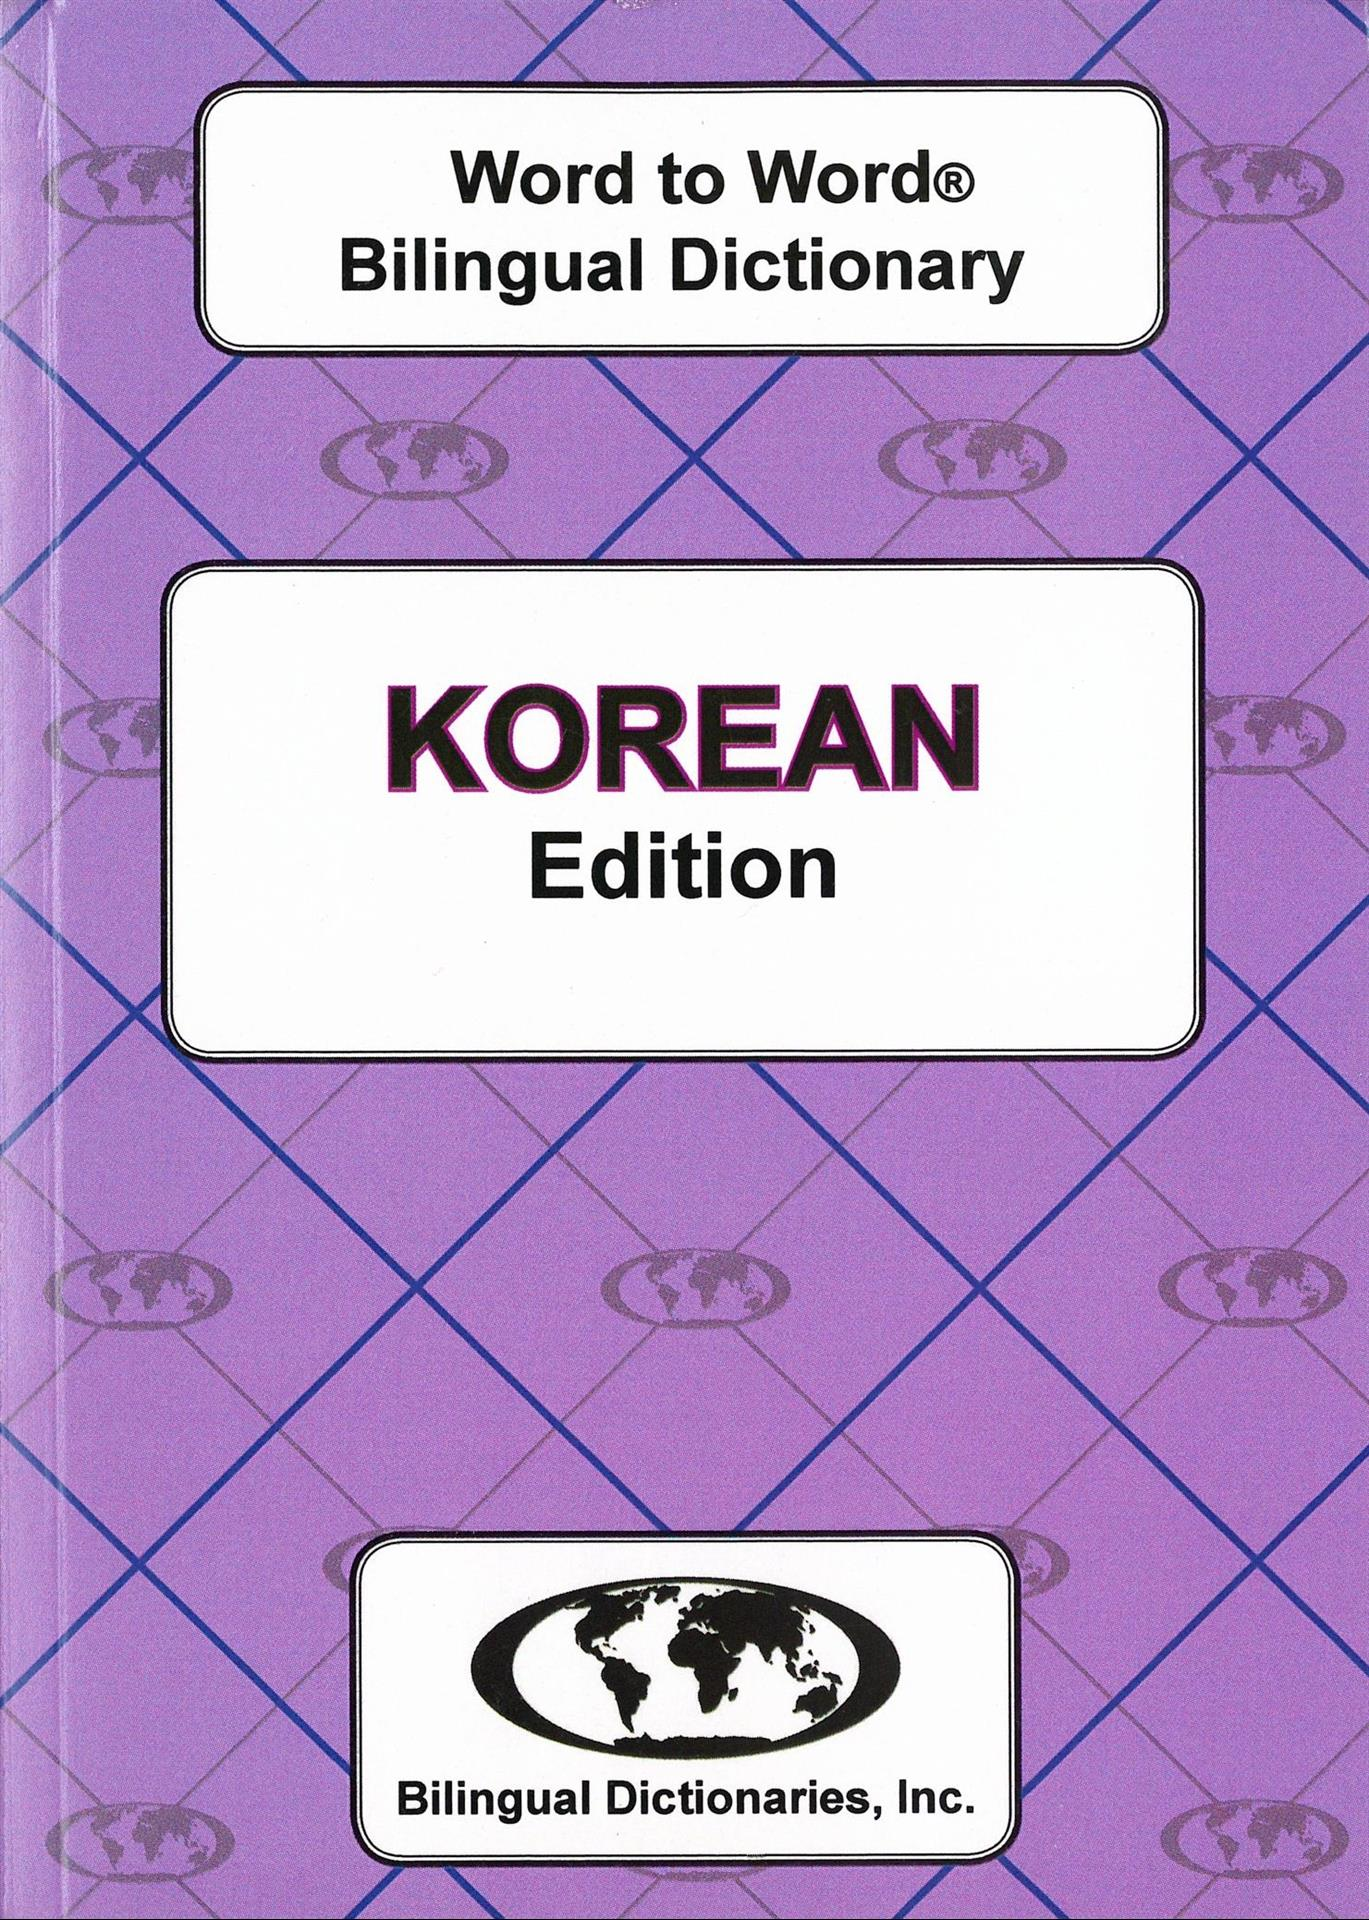 KOREAN Word to Word Bilingual Dictionary